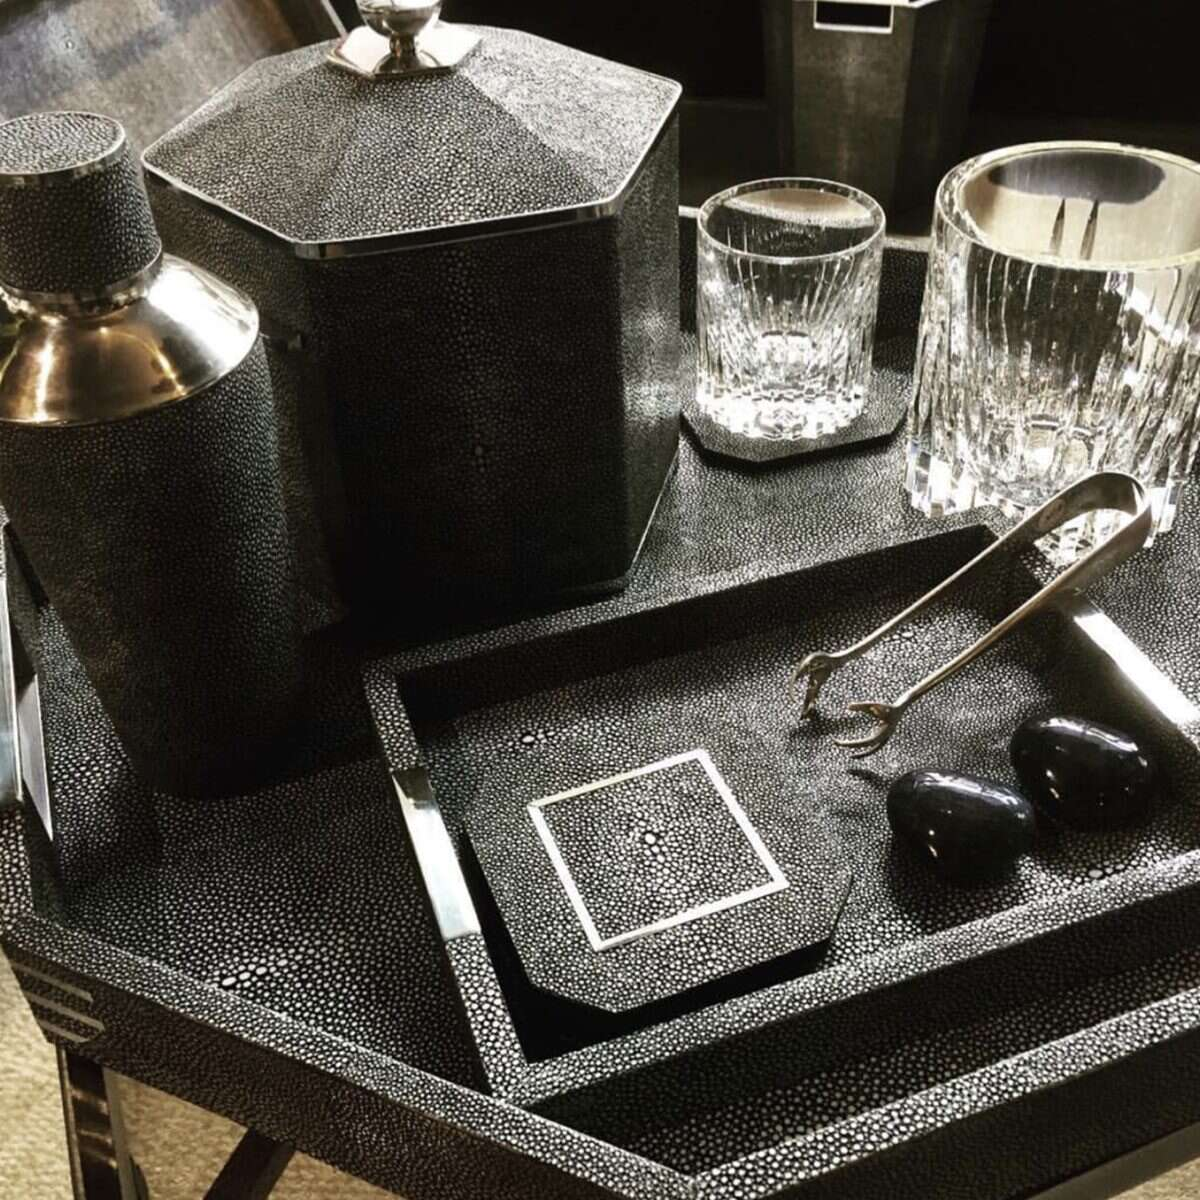 Cocktail Shaker in Charcoal Shagreen by Forwood Design 7